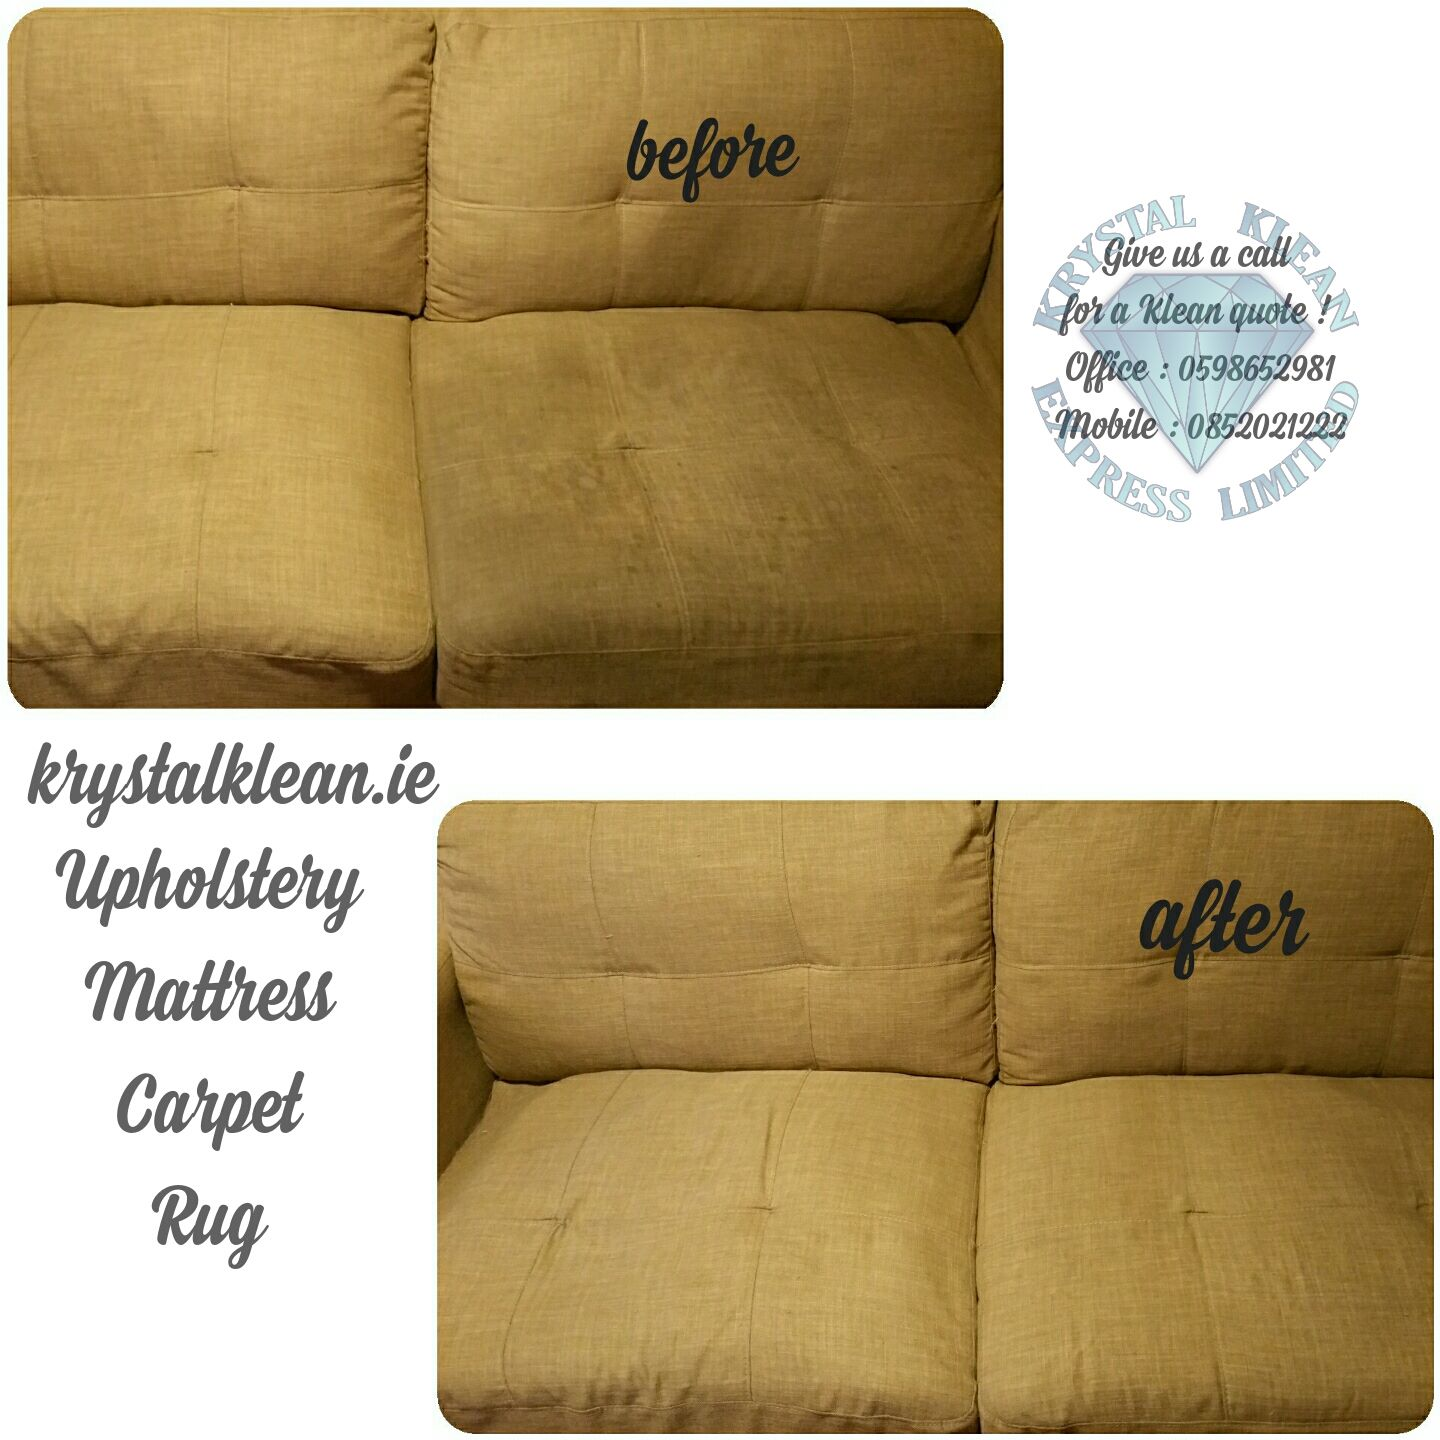 Upholstery Cleaning Services Dublin Upholstery Cleaning Dublin Upholstery Cleaning Kildare Sofa Cleaning Carlow Upholstery Cleaning Carlow